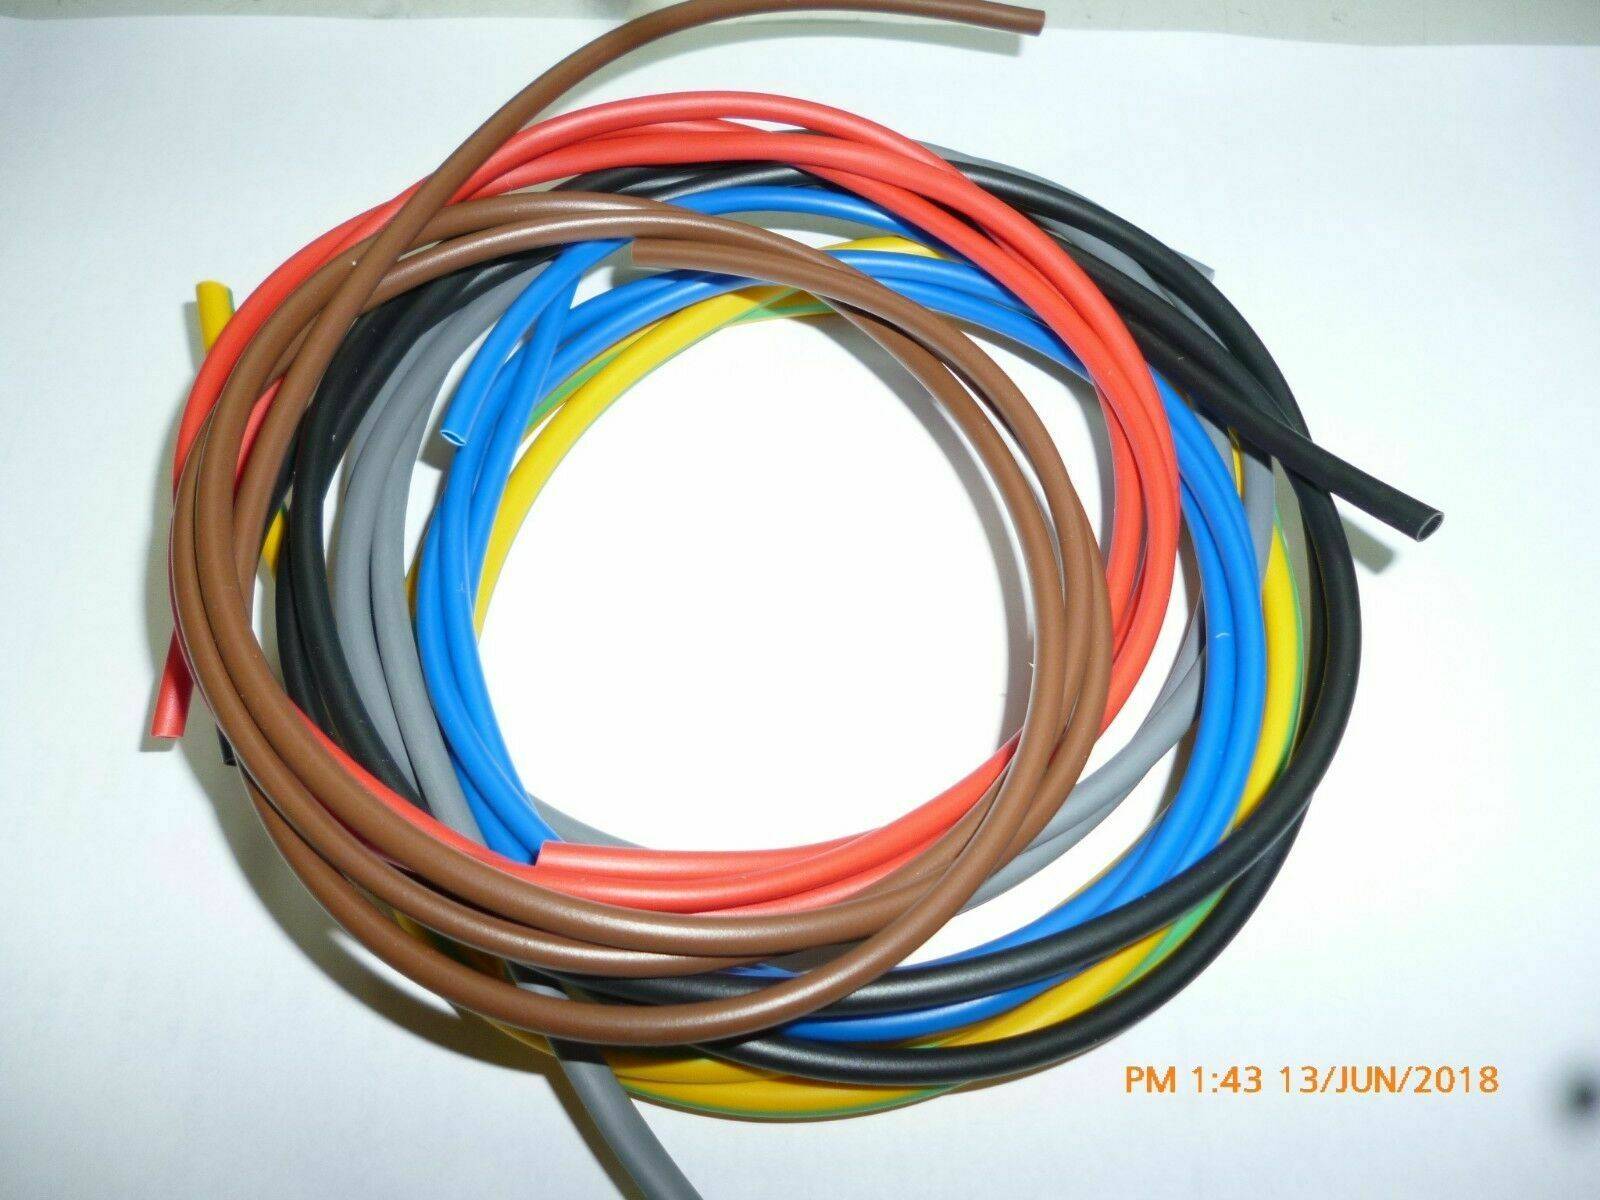 Electrical Pvc Sleeving 3mm 4mm 6mm Wire Cable Earth Brown Red Blue Motorcycle Wiring Harness Tubing 1 Of 1free Shipping